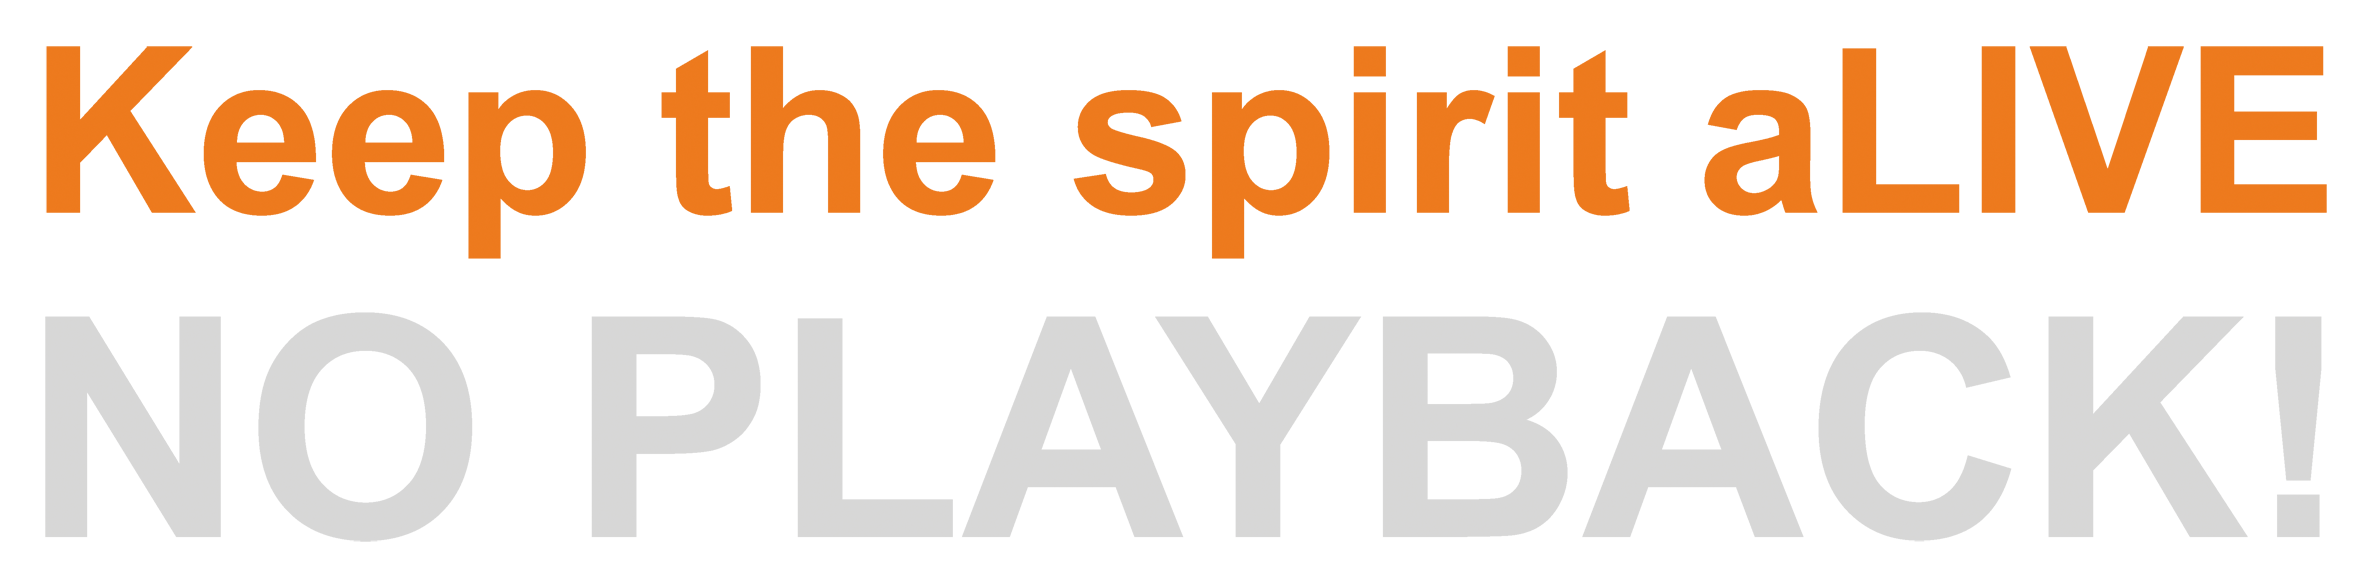 Keep the spirit aLIVE! - No Playback!